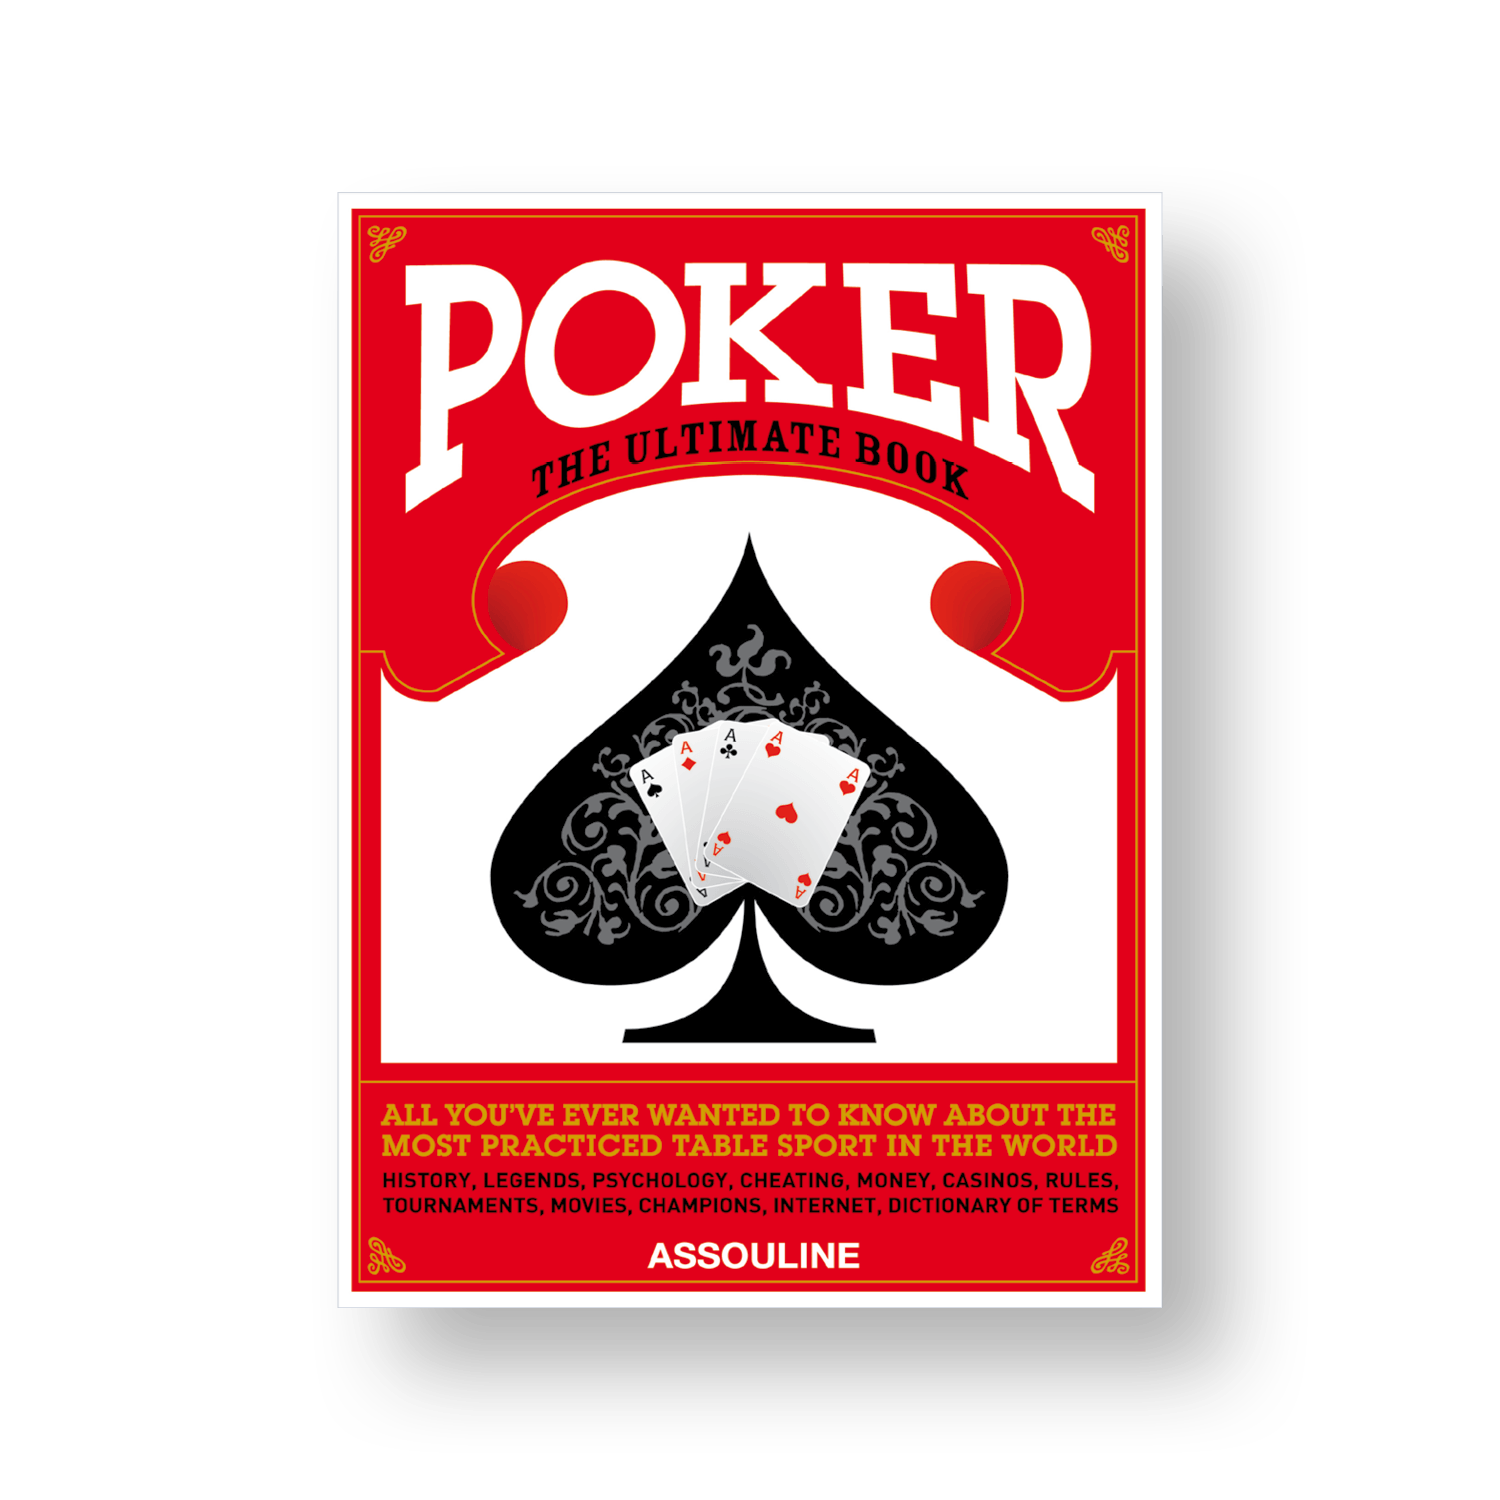 Poker - The ultimate book